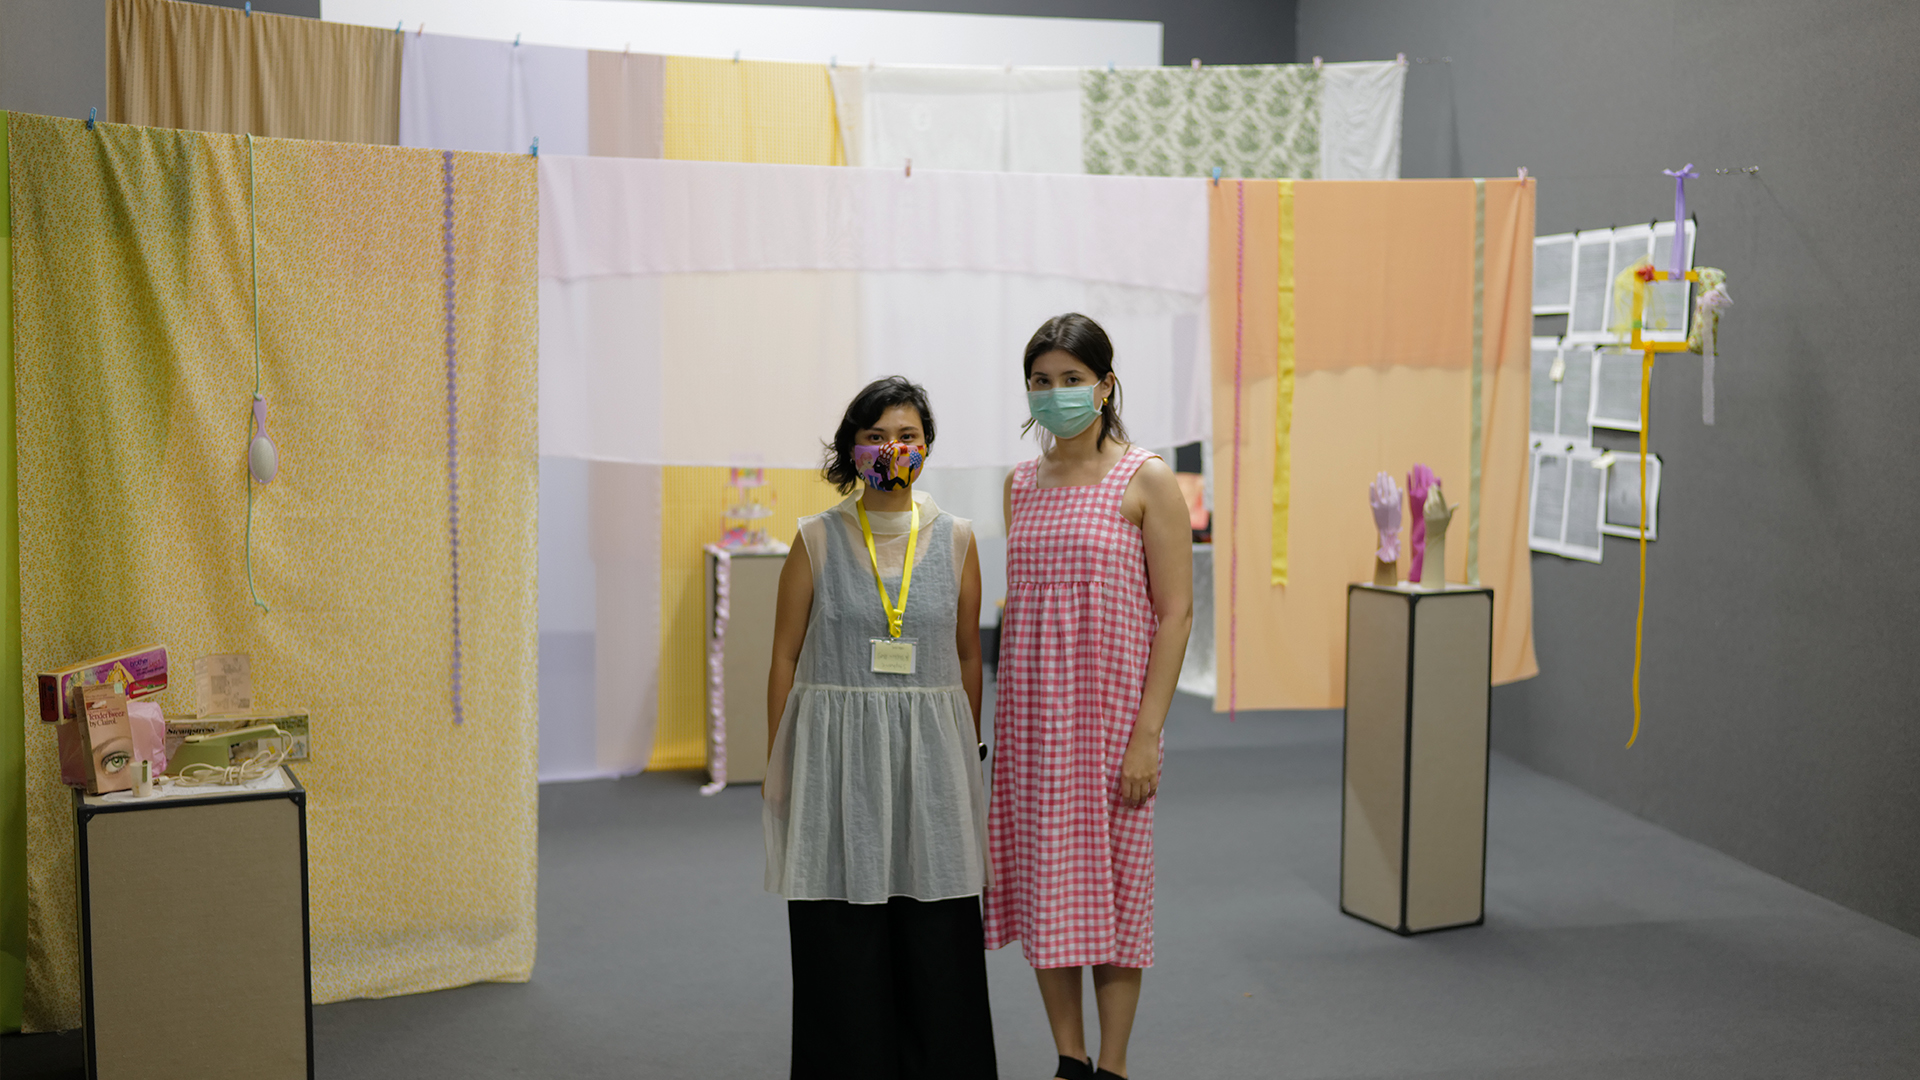 2 women standing in front of a display of textiles